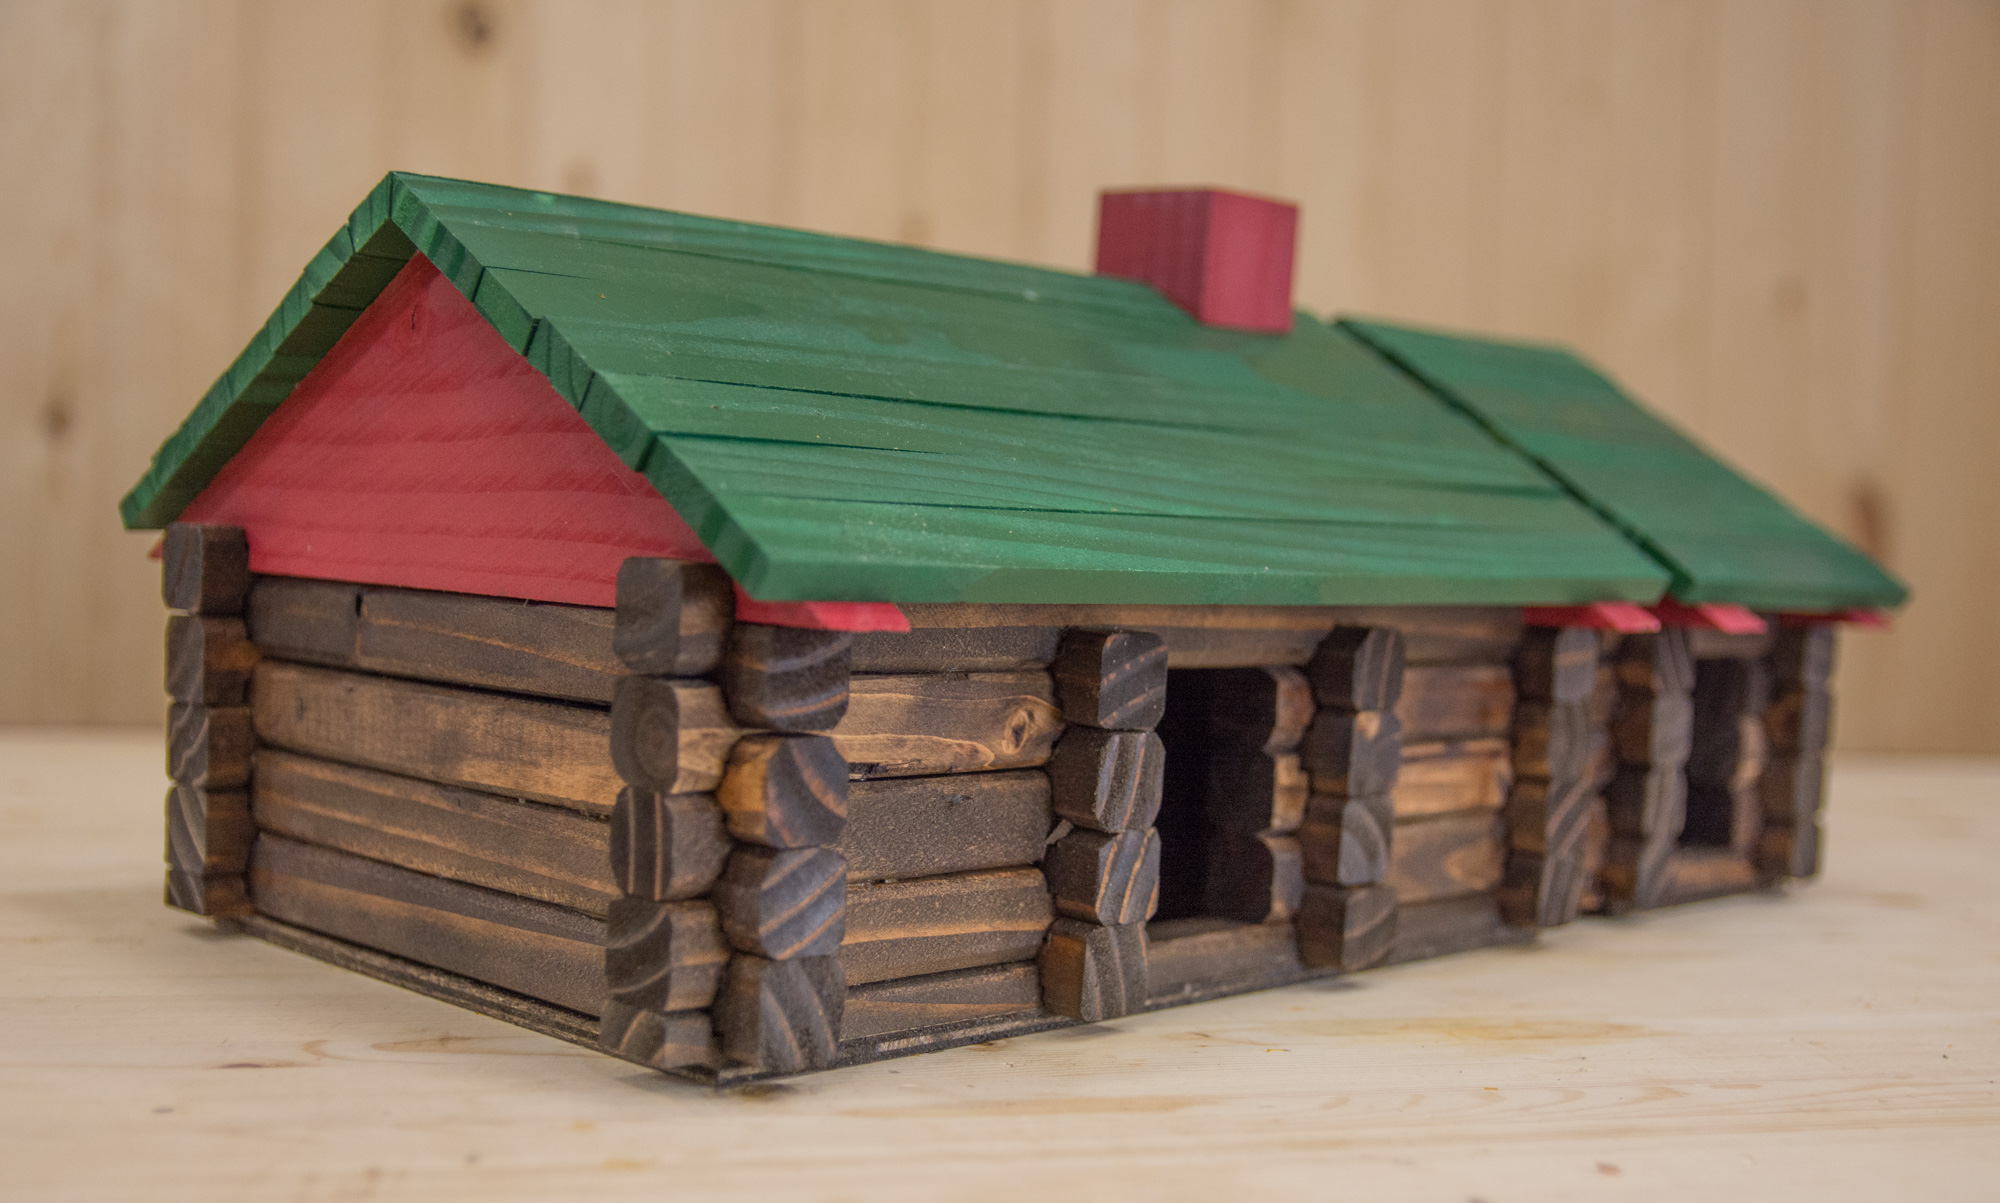 #903B3D Make Your Own DIY Lincoln Logs From Scrap Lumber with 2000x1203 px of Recommended How To Build A Lincoln Log House 12032000 save image @ avoidforclosure.info